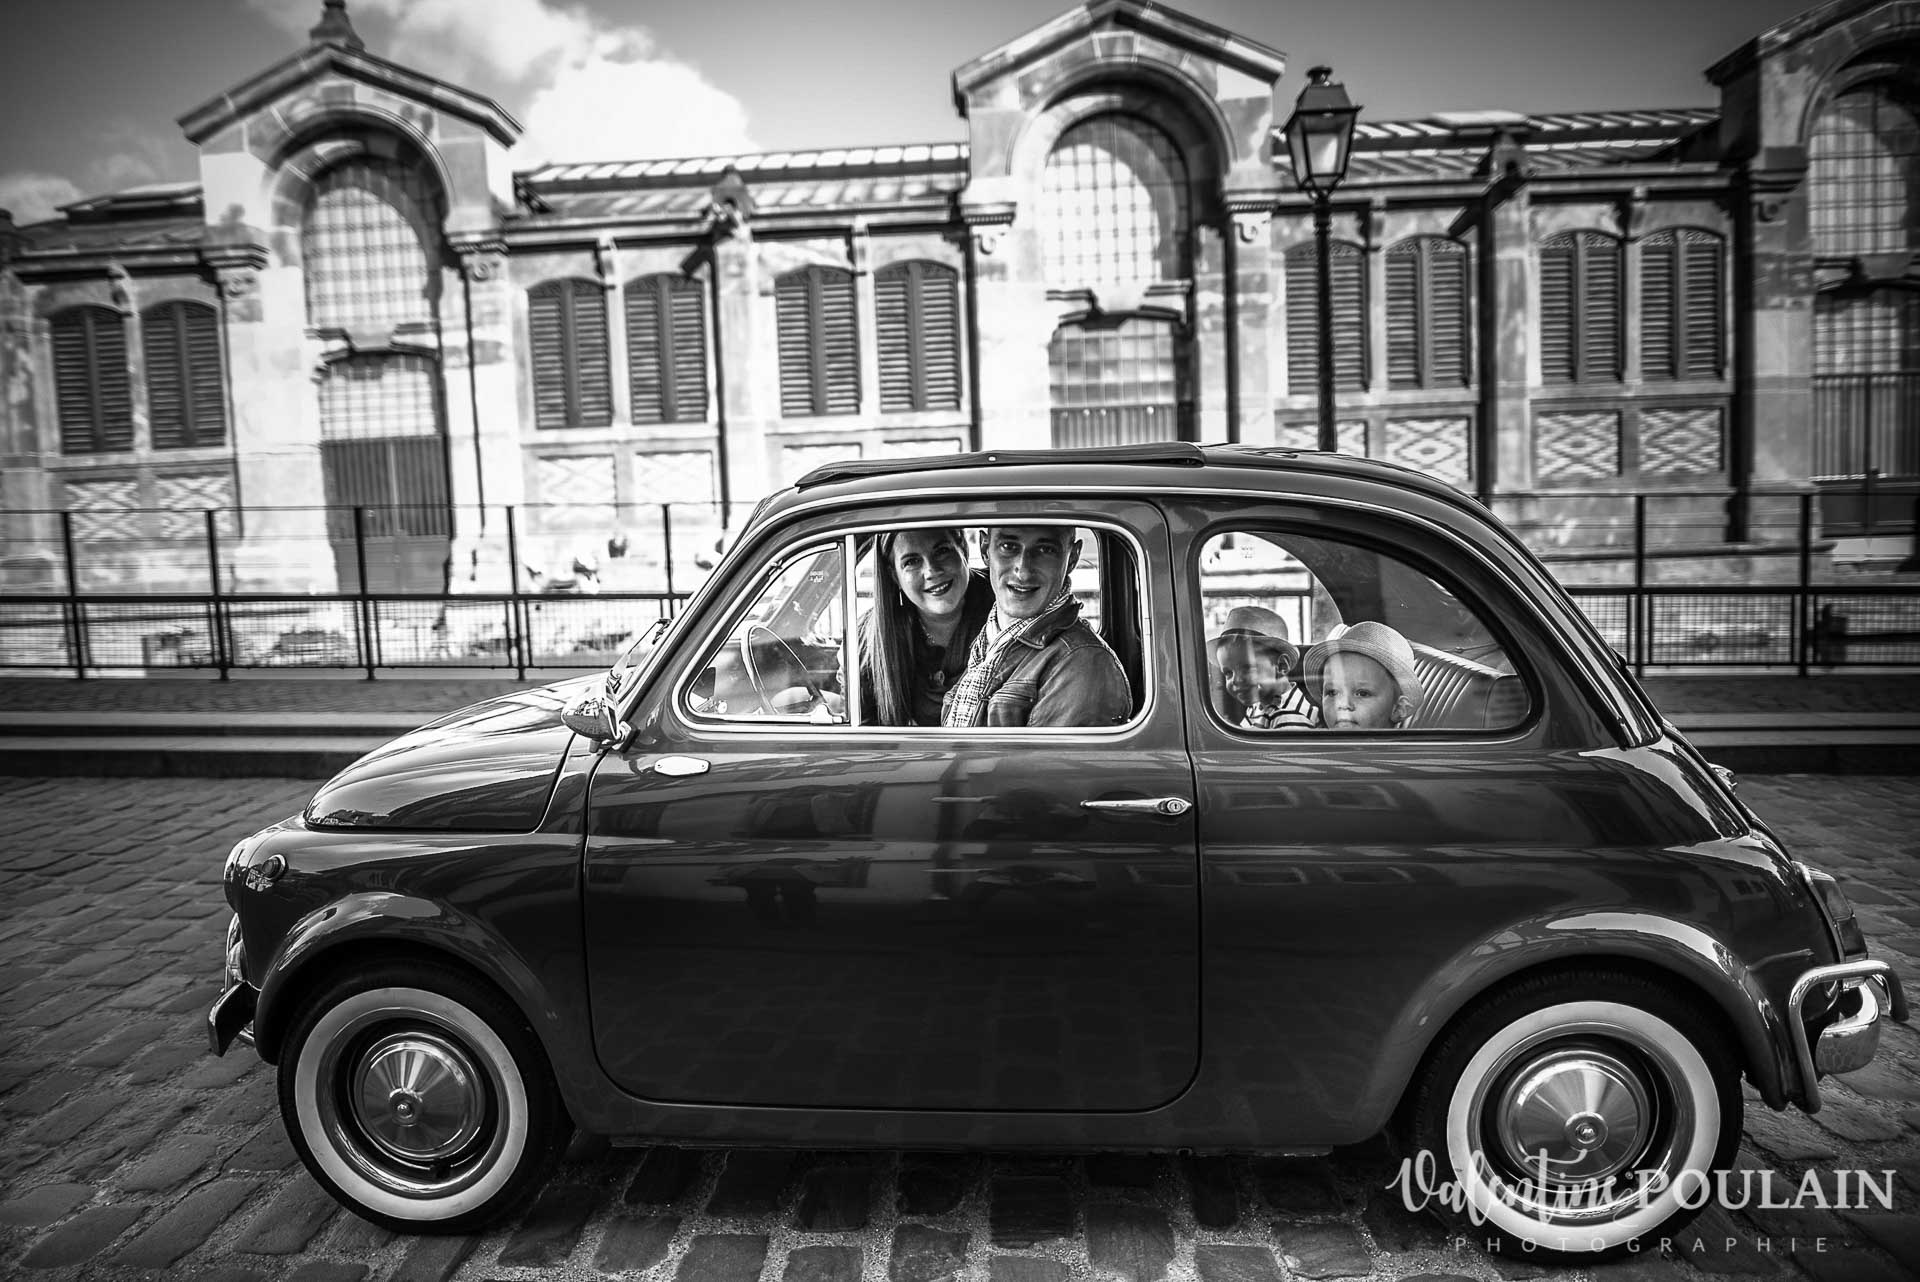 Shooting famille voiture ancienne fiat 500 marché couvert